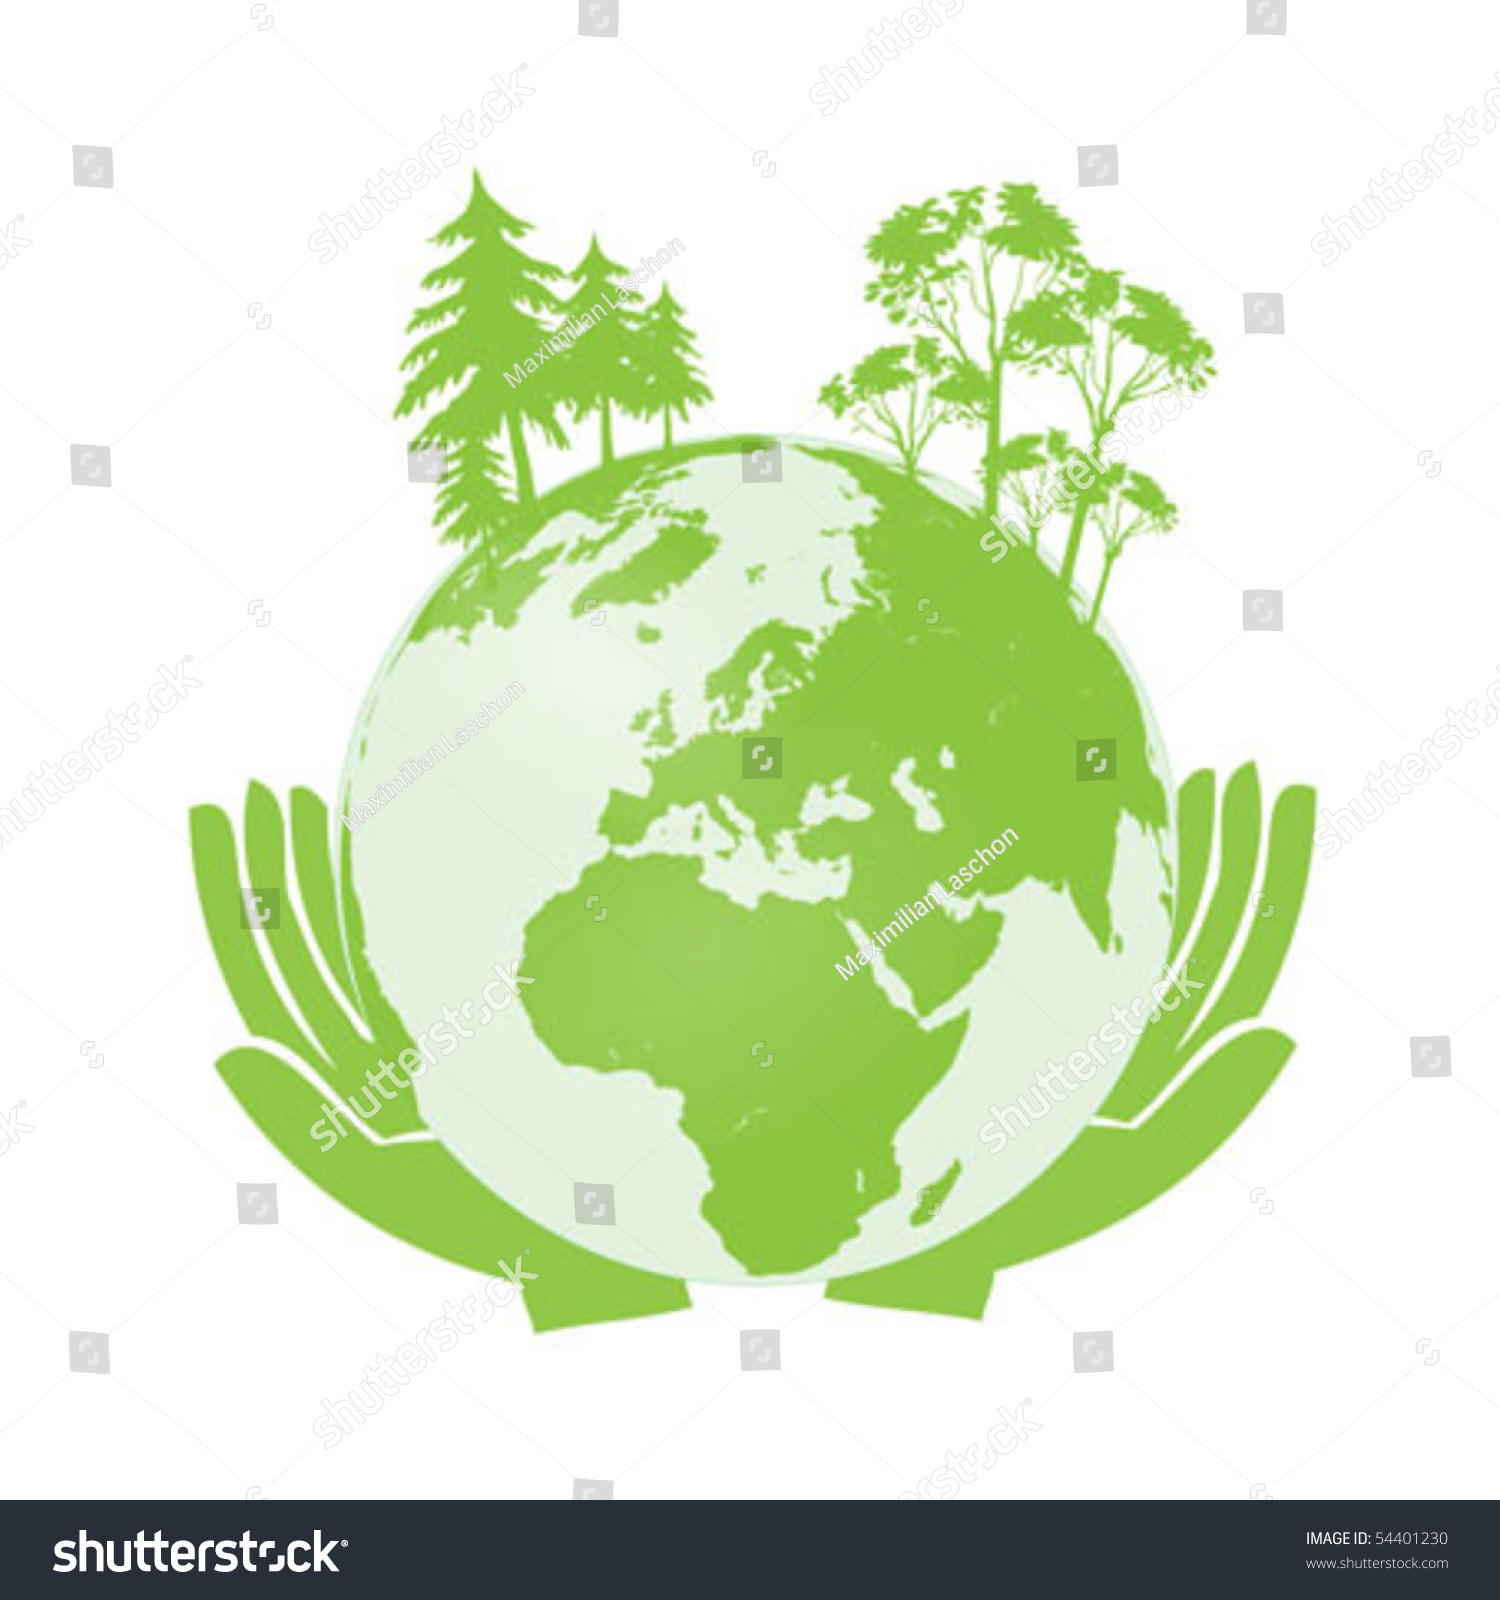 clipart save the earth - photo #31